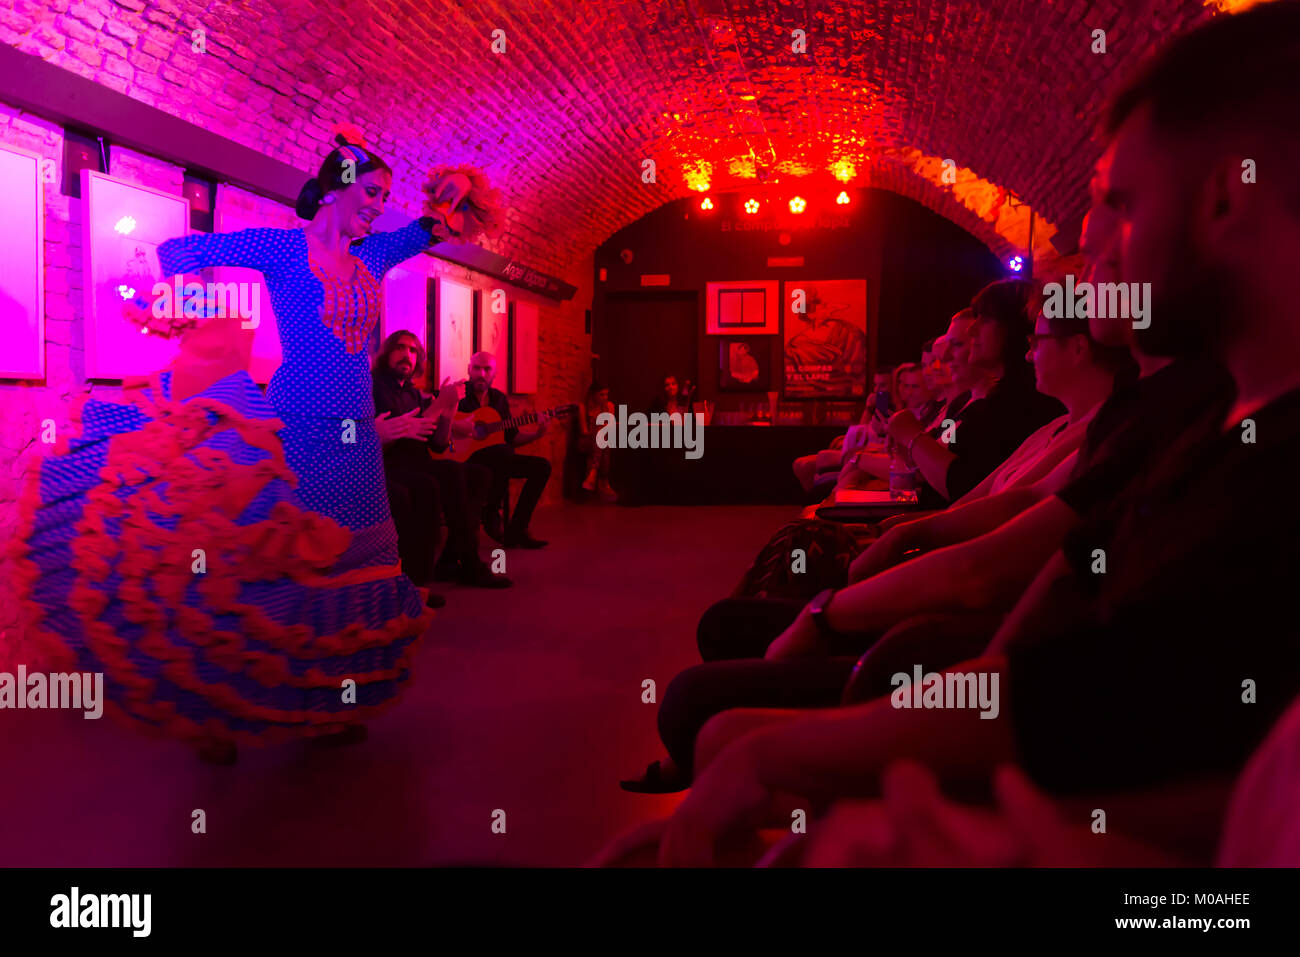 Seville, Andalusia, Spain. A demonstration of flamenco dance in a cellar. - Stock Image